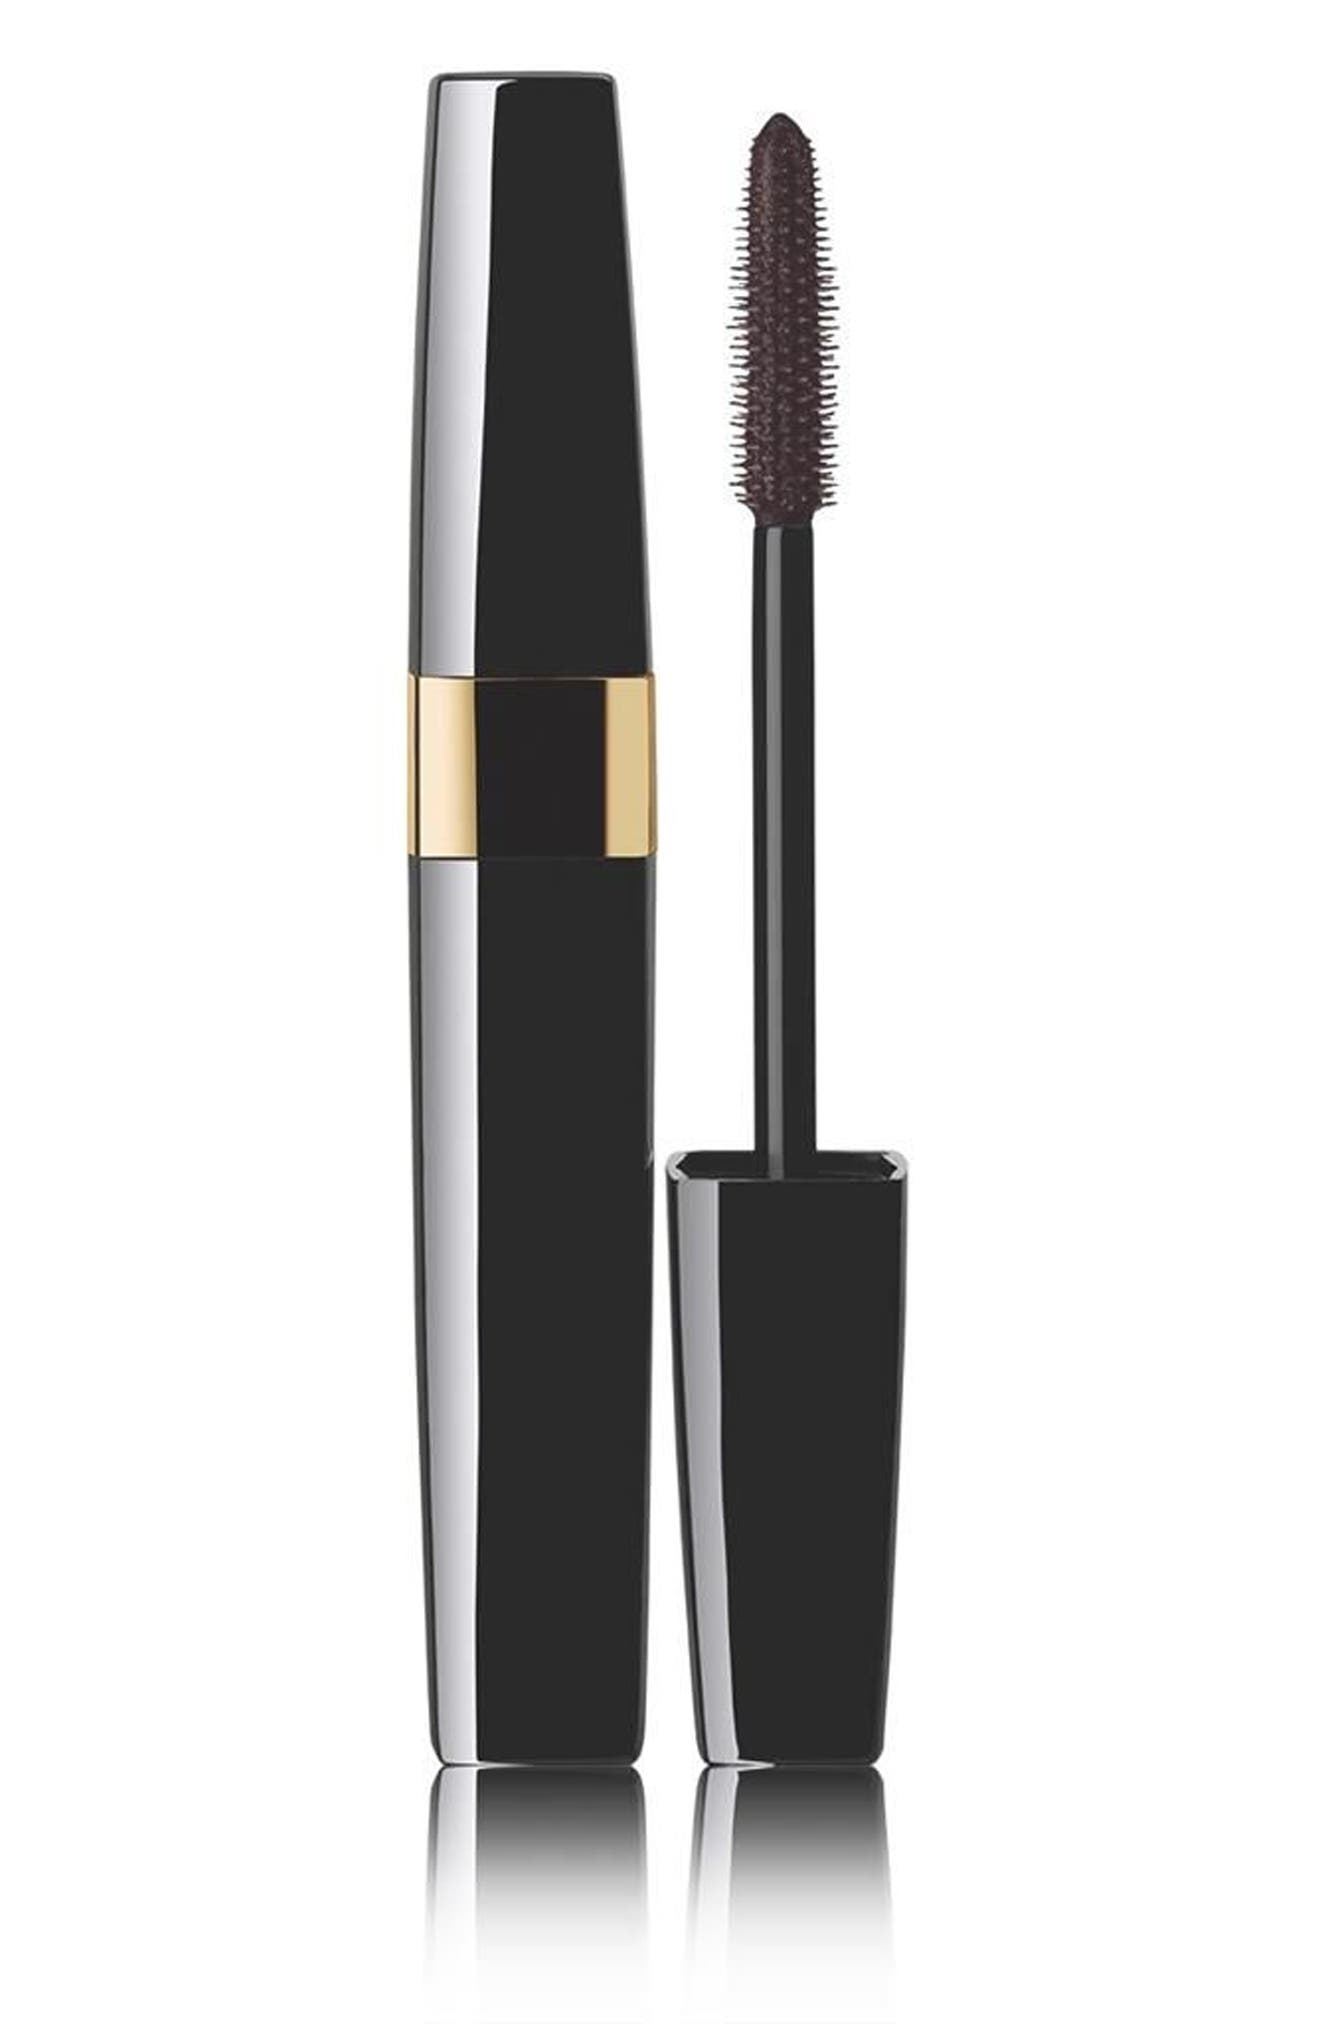 CHANEL INIMITABLE MASCARA Volume - Length - Curl - Separation